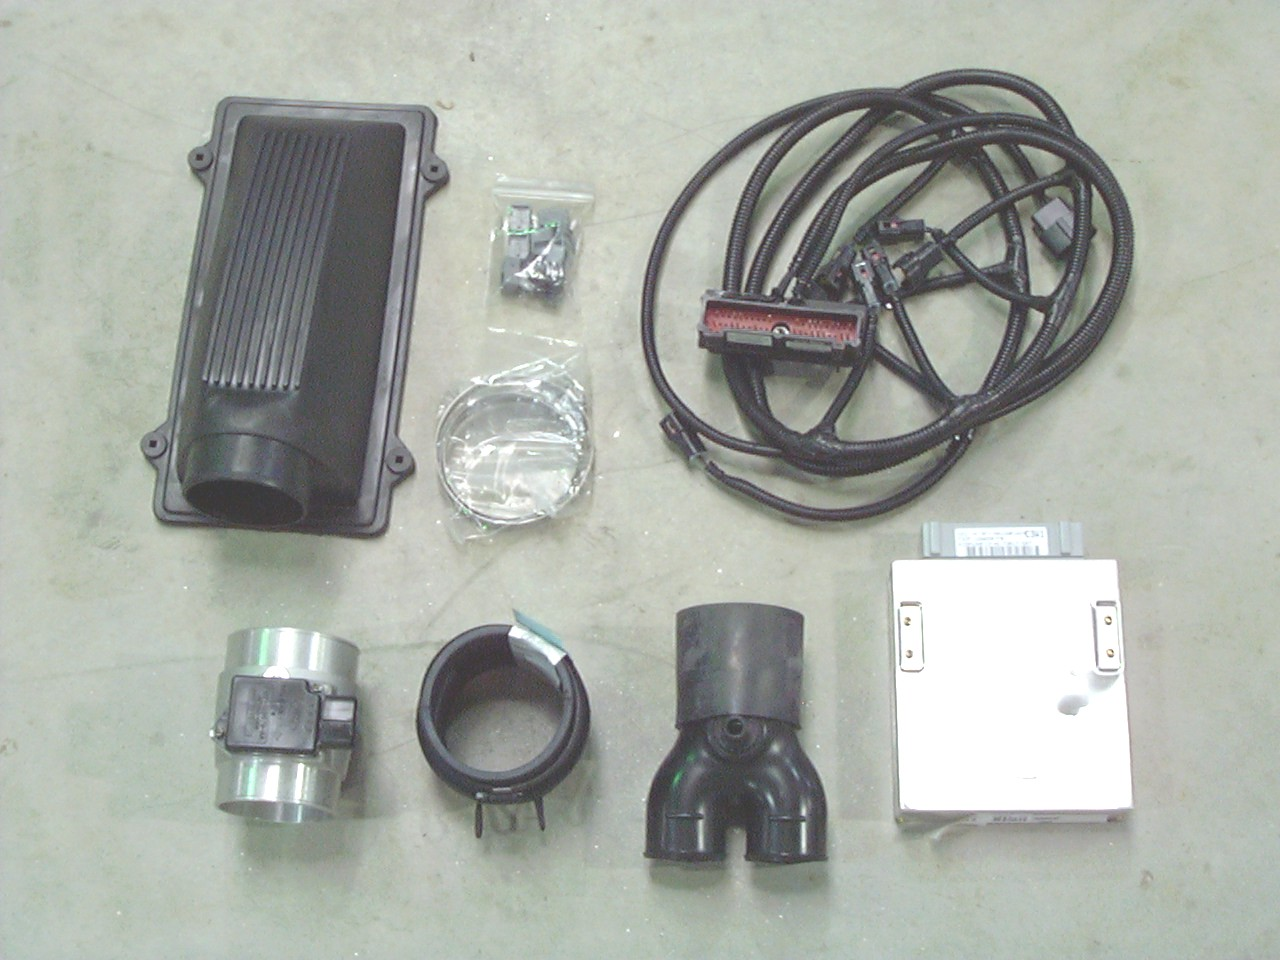 hight resolution of complete kits include engine computer mass air meter hoses injector o2 mass air conversion harness and instructions all kits designed for banked